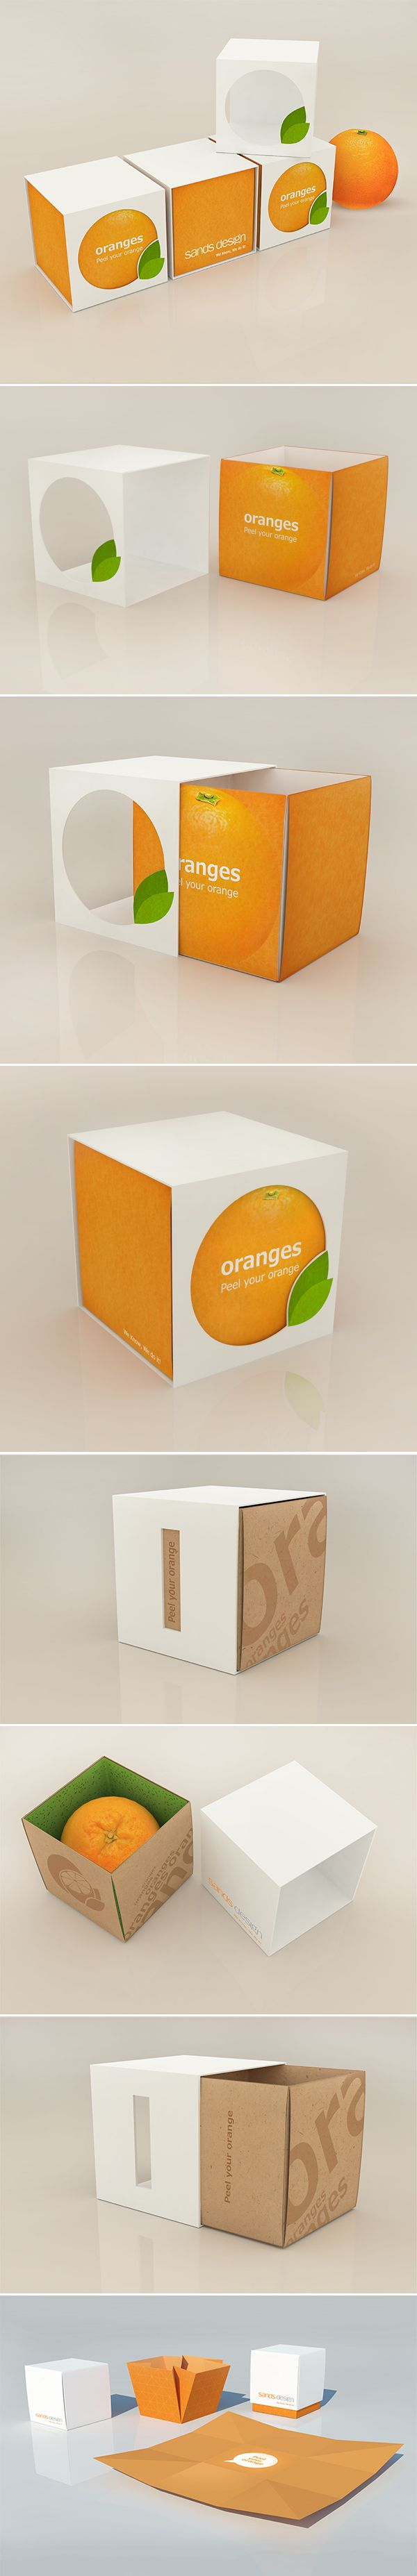 Orange packaging by Tatiana Burdyugina, via Behance